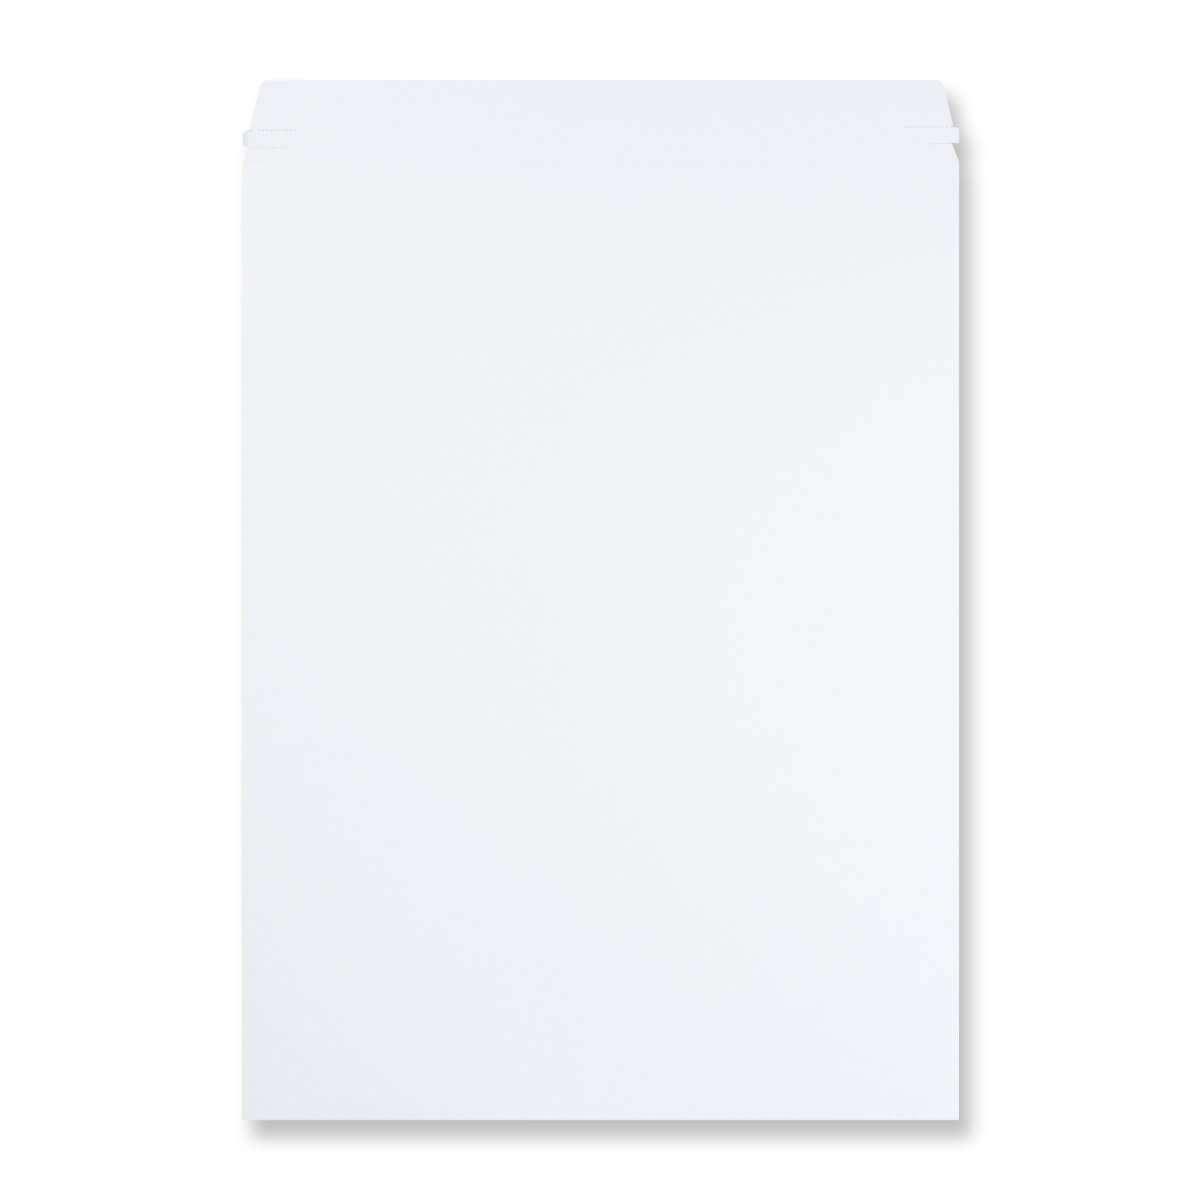 508 x 381mm WHITE ALL BOARD ENVELOPES